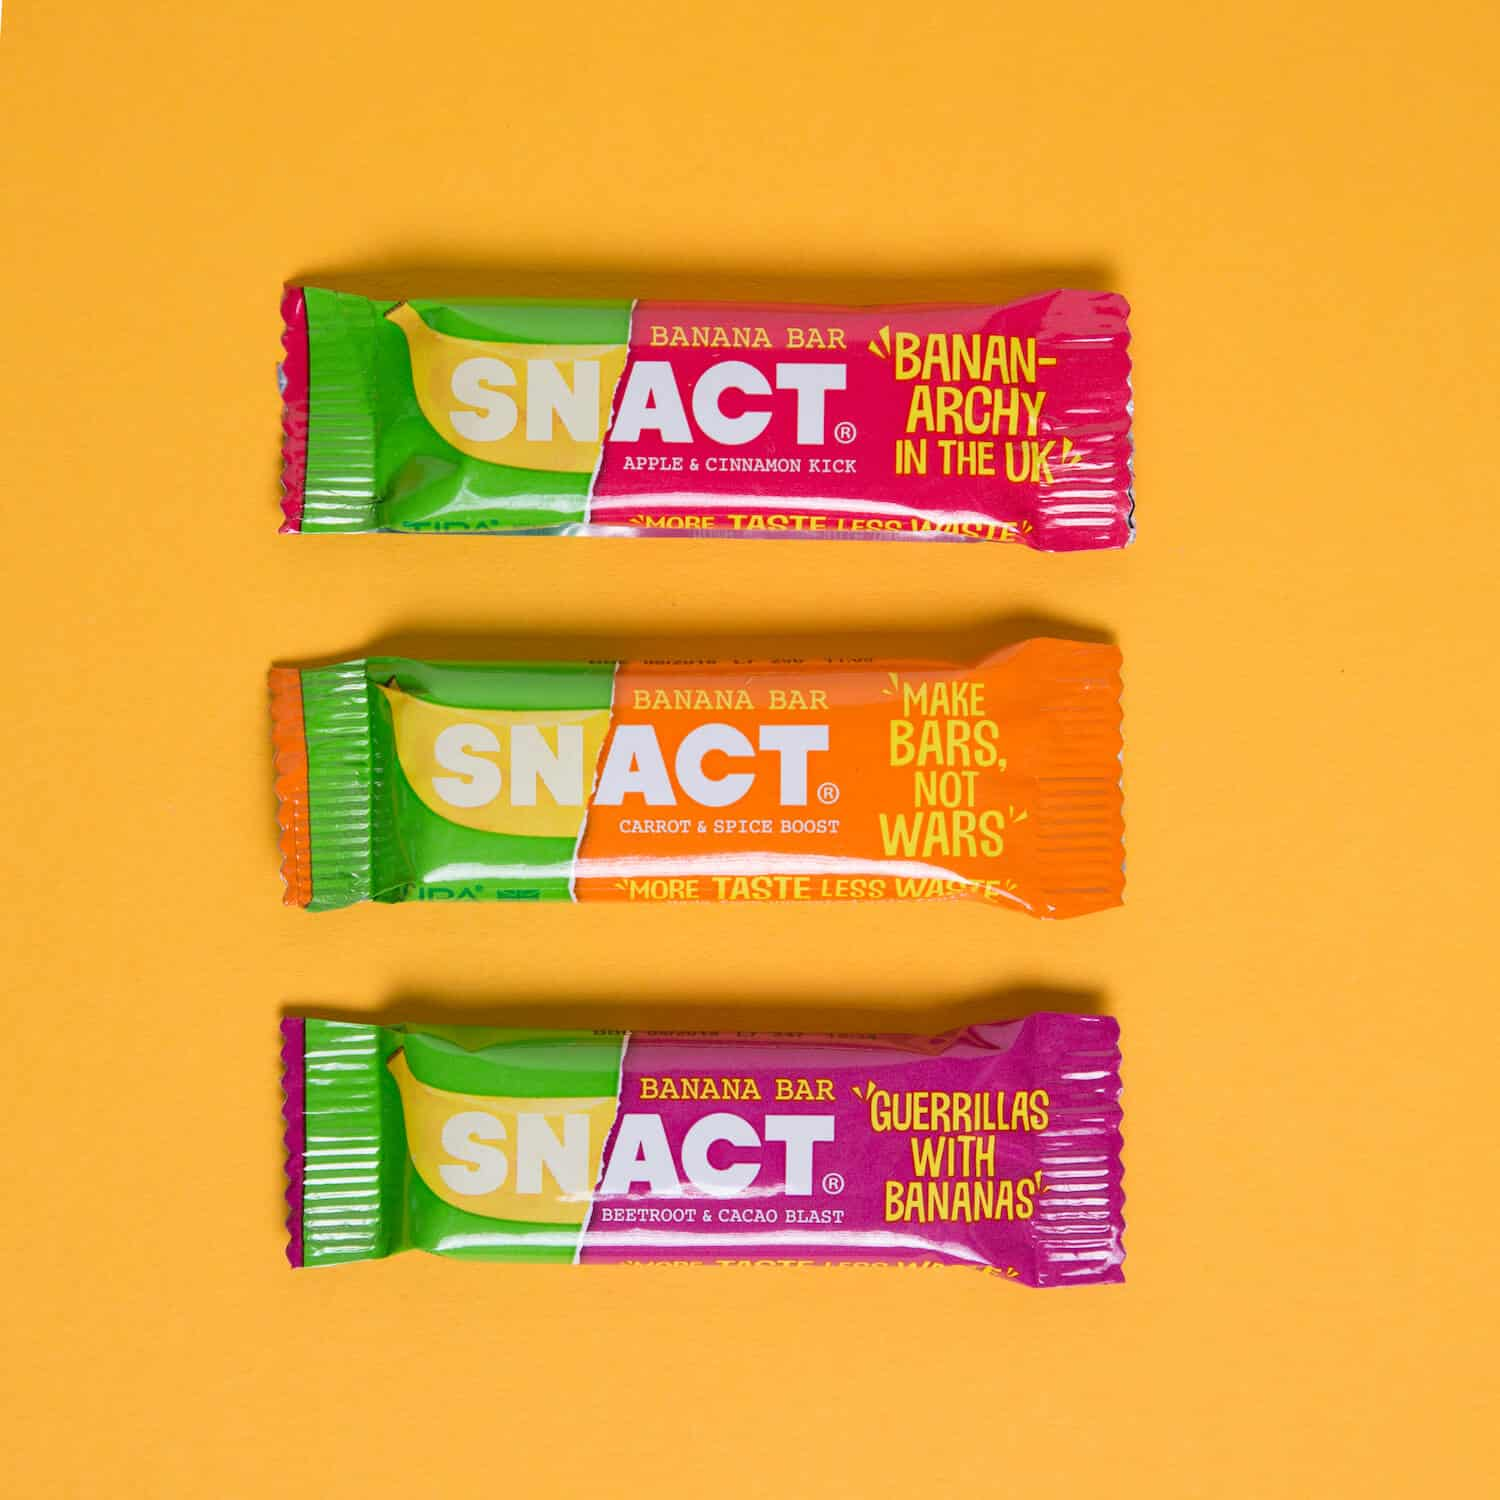 Snact bar wrapper